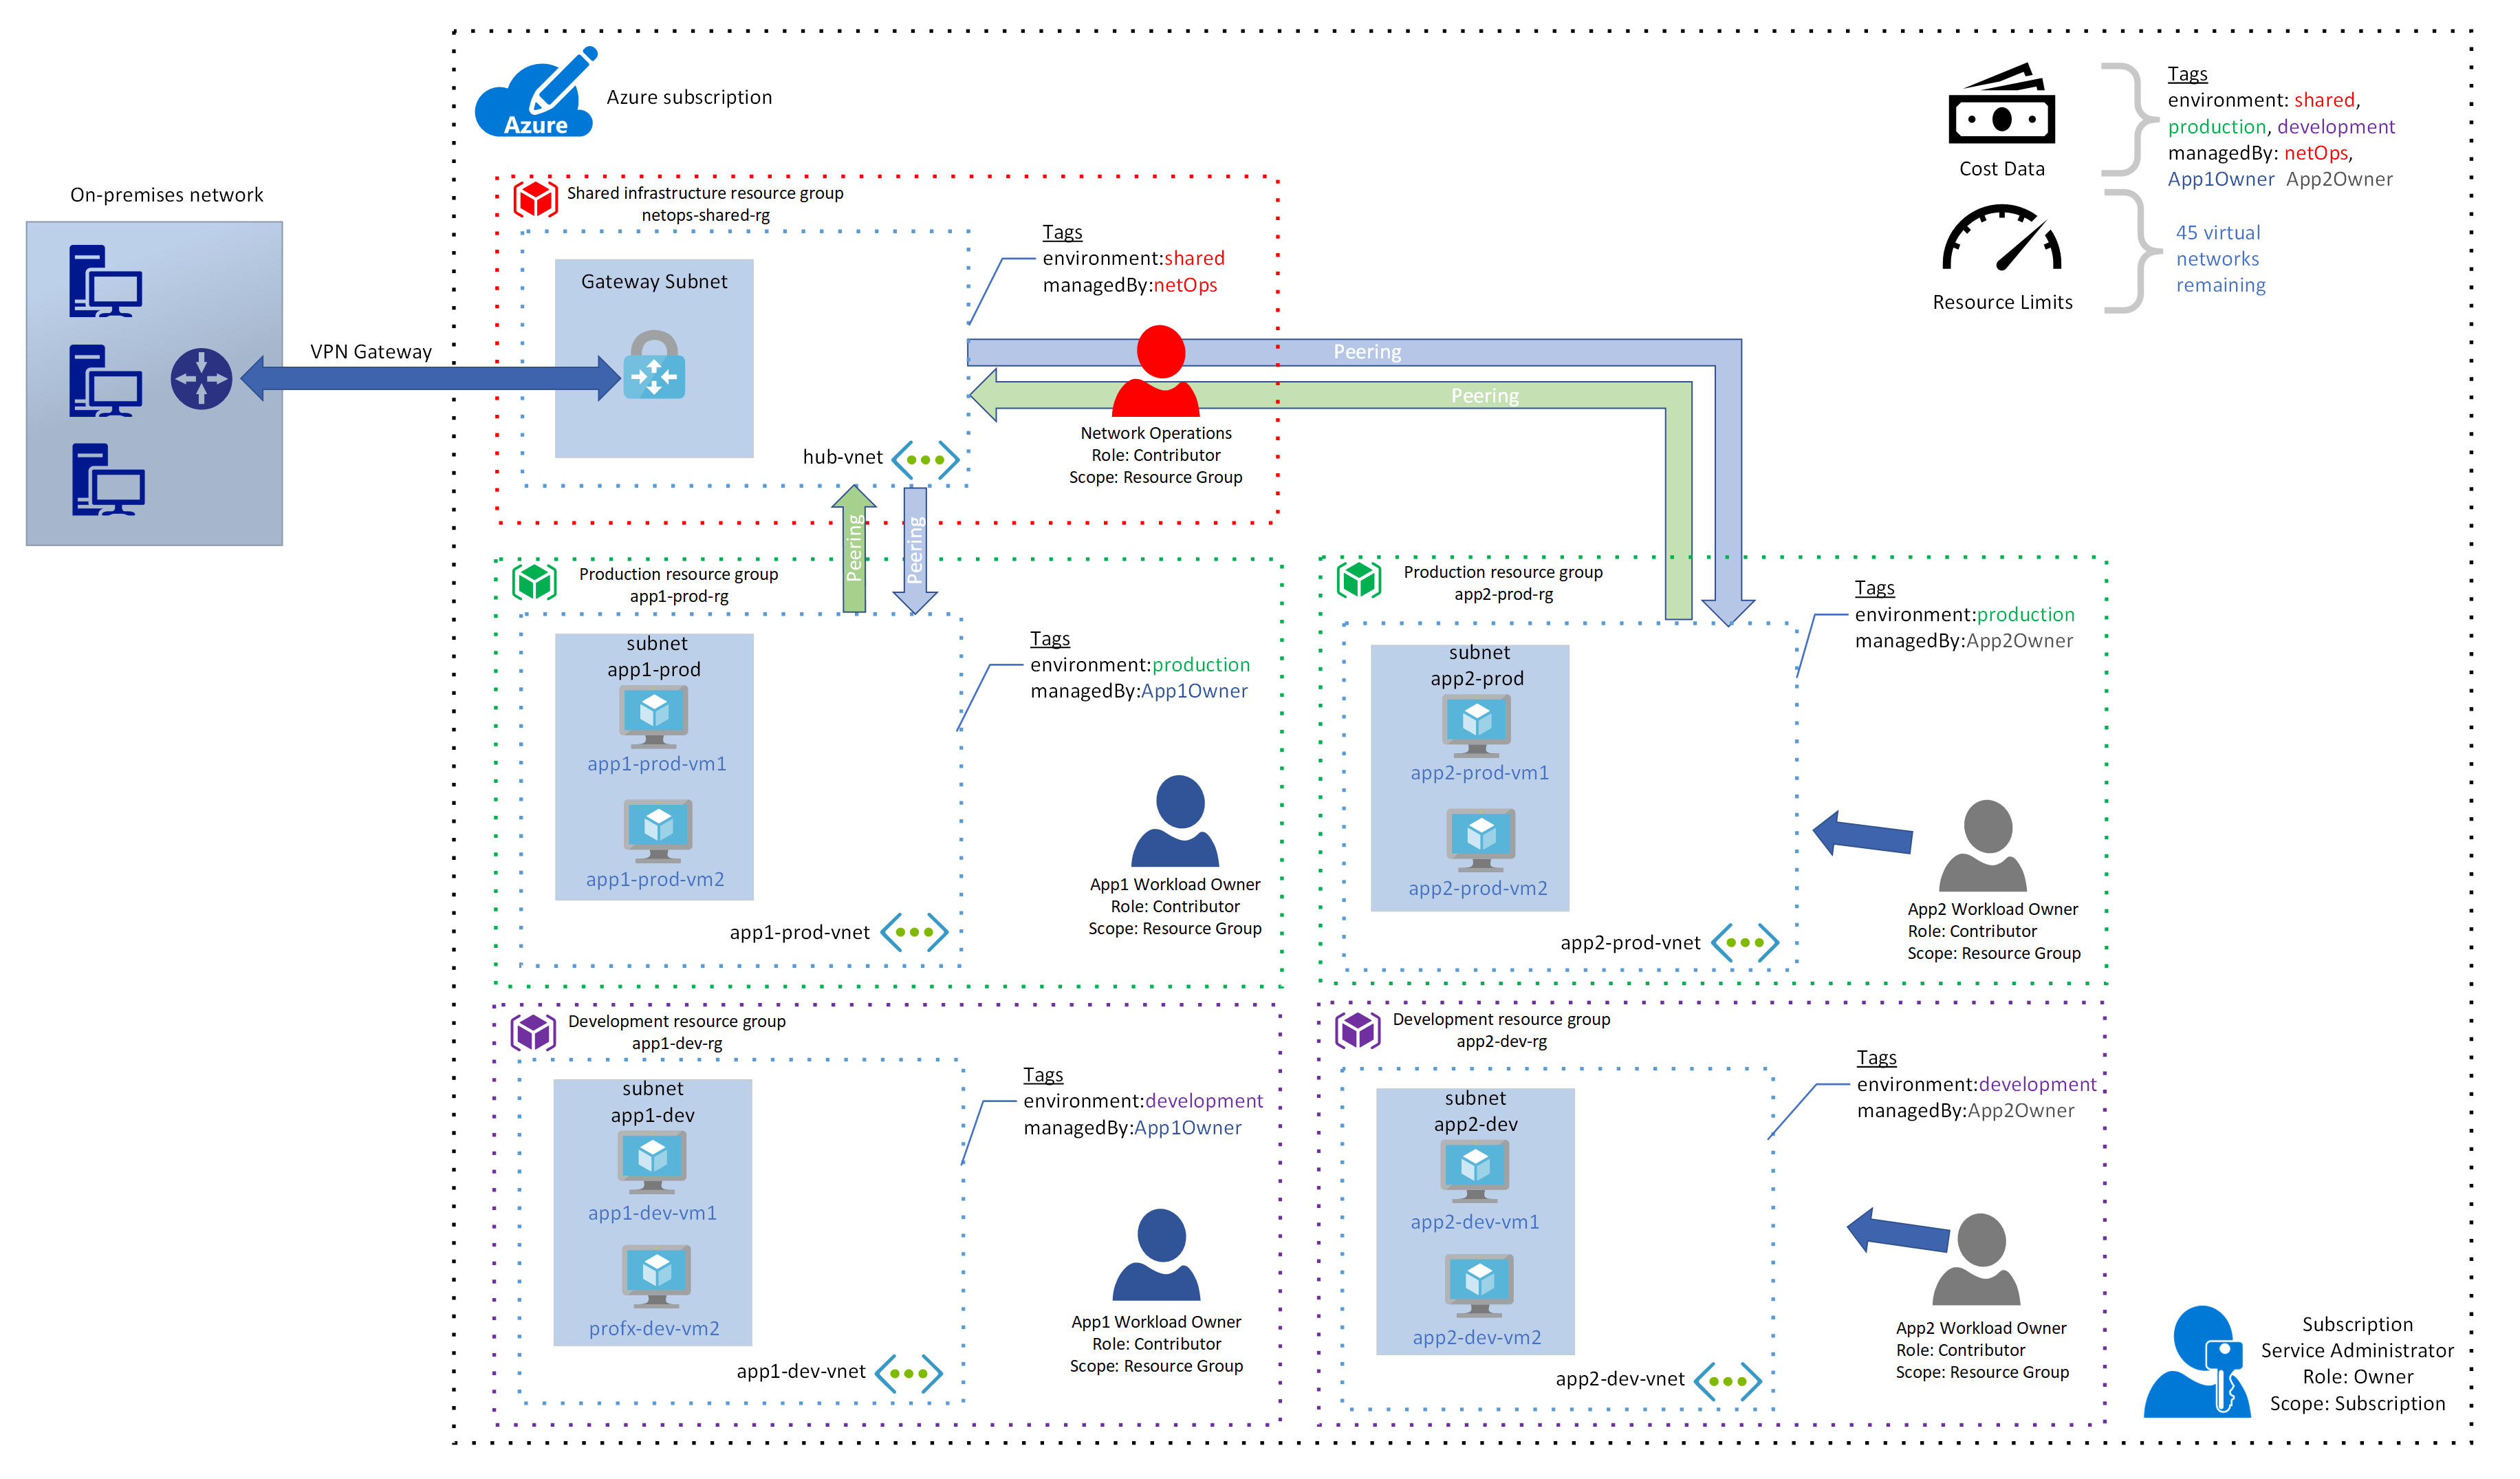 App2 workload owner sends a request to the network operations user to peer the app2 prod vnet with the hub vnet ПоРьзоватеРь сетевых операций создает